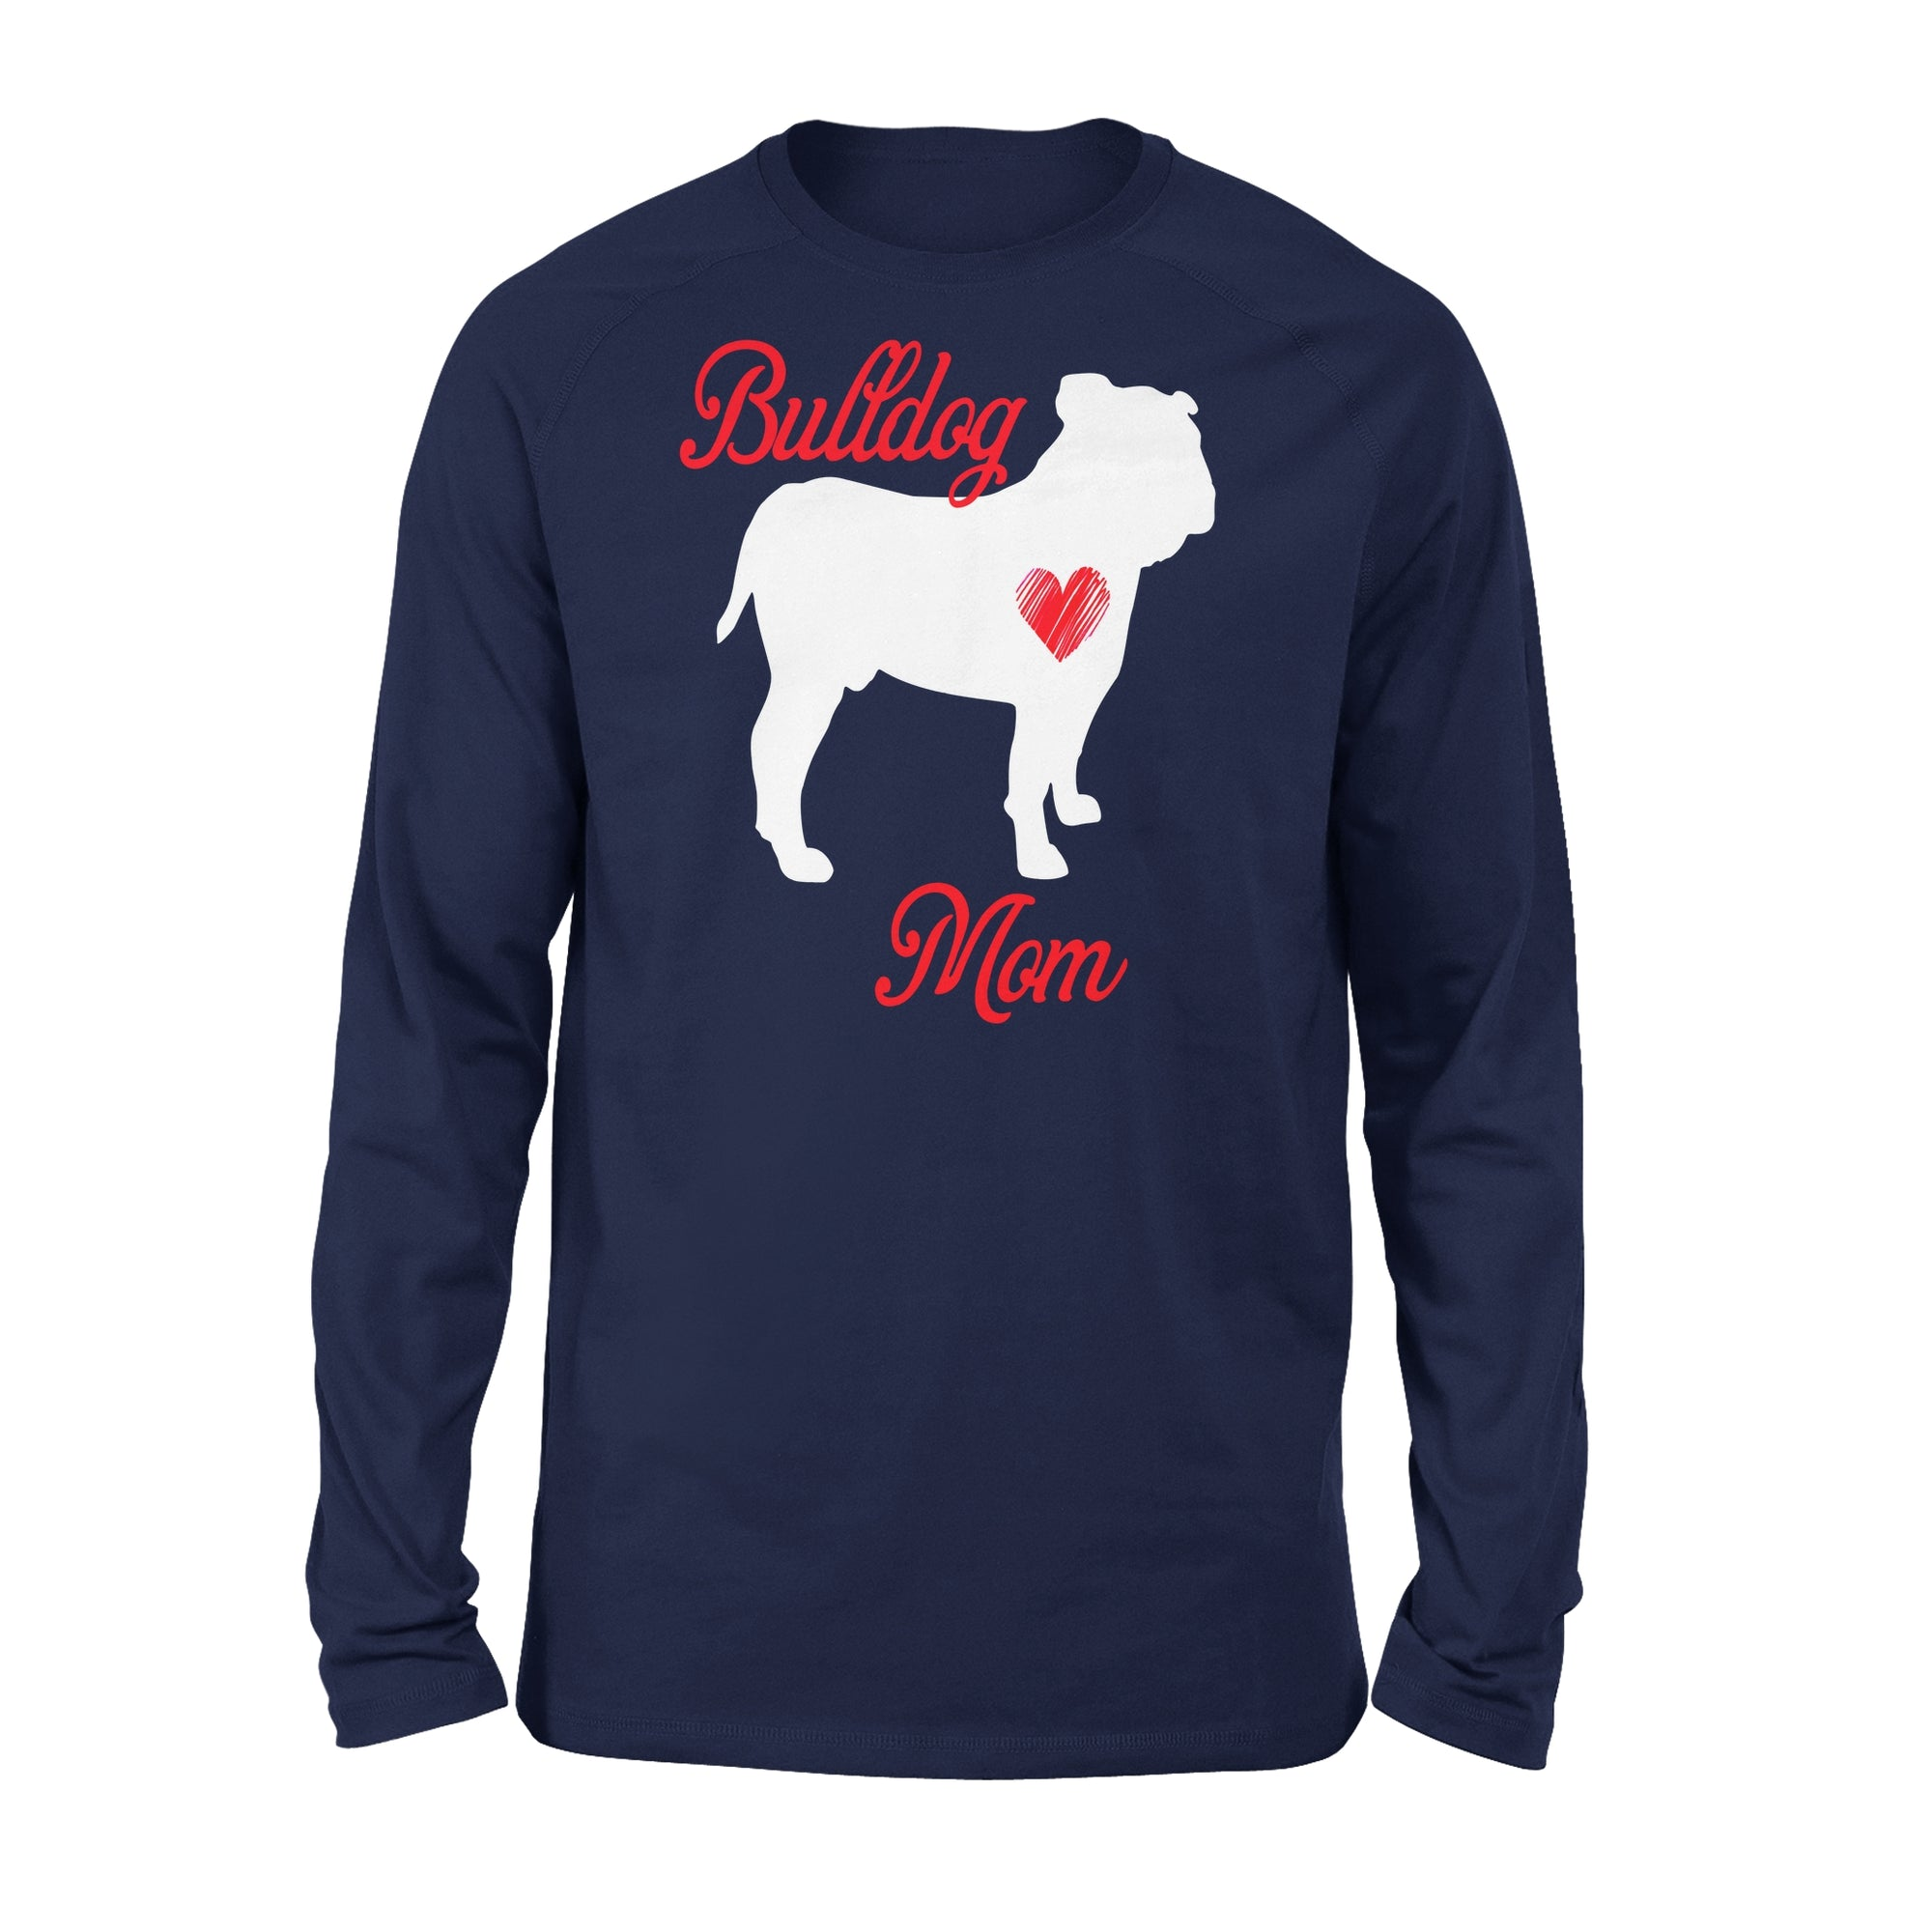 VIRA Premium Long Sleeve For Bulldog Lovers